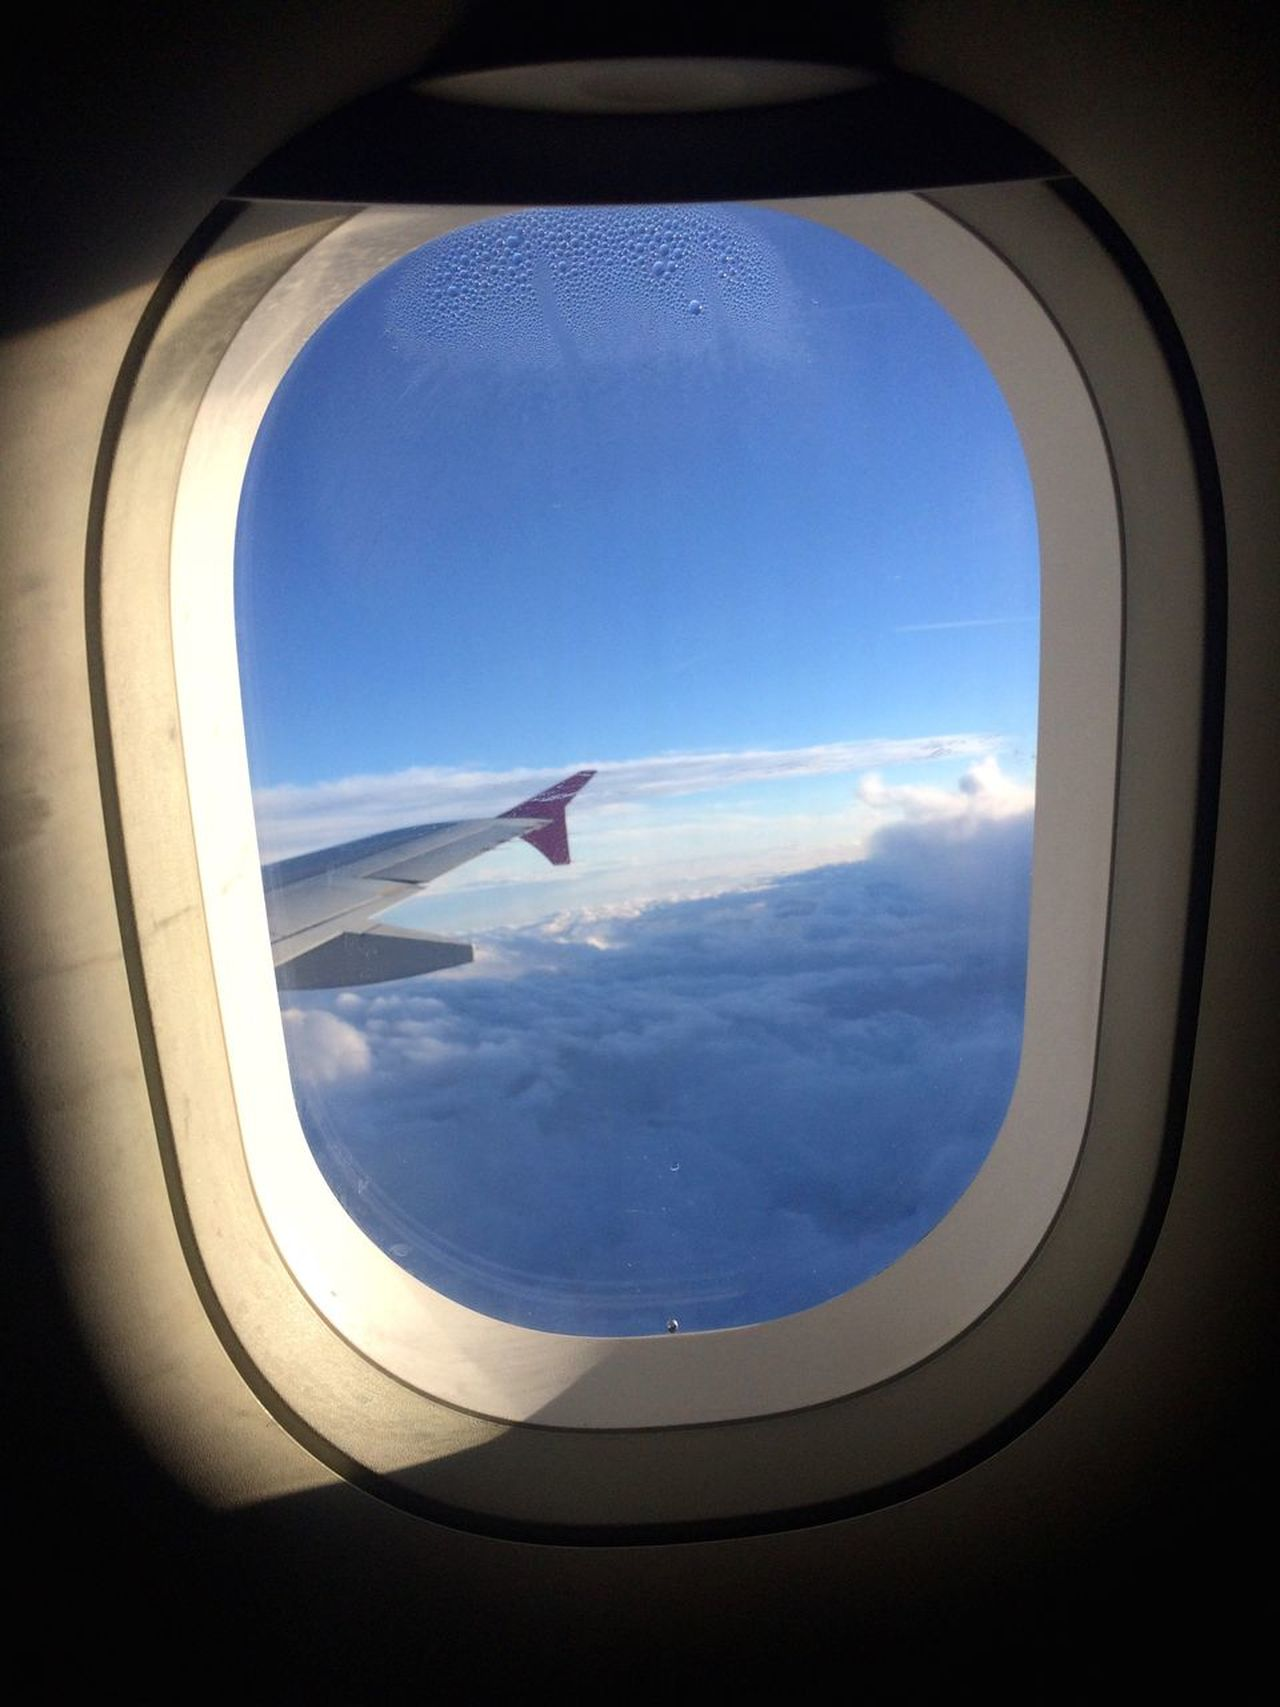 Blue Skies Airplane Window Transportation Air Vehicle Vehicle Interior Travel Sky Flying Journey Mode Of Transport Cloud - Sky No People Day Mid-air Sunlight Blue Commercial Airplane Indoors  Airplane Wing Aerial View Let's Go. Together.